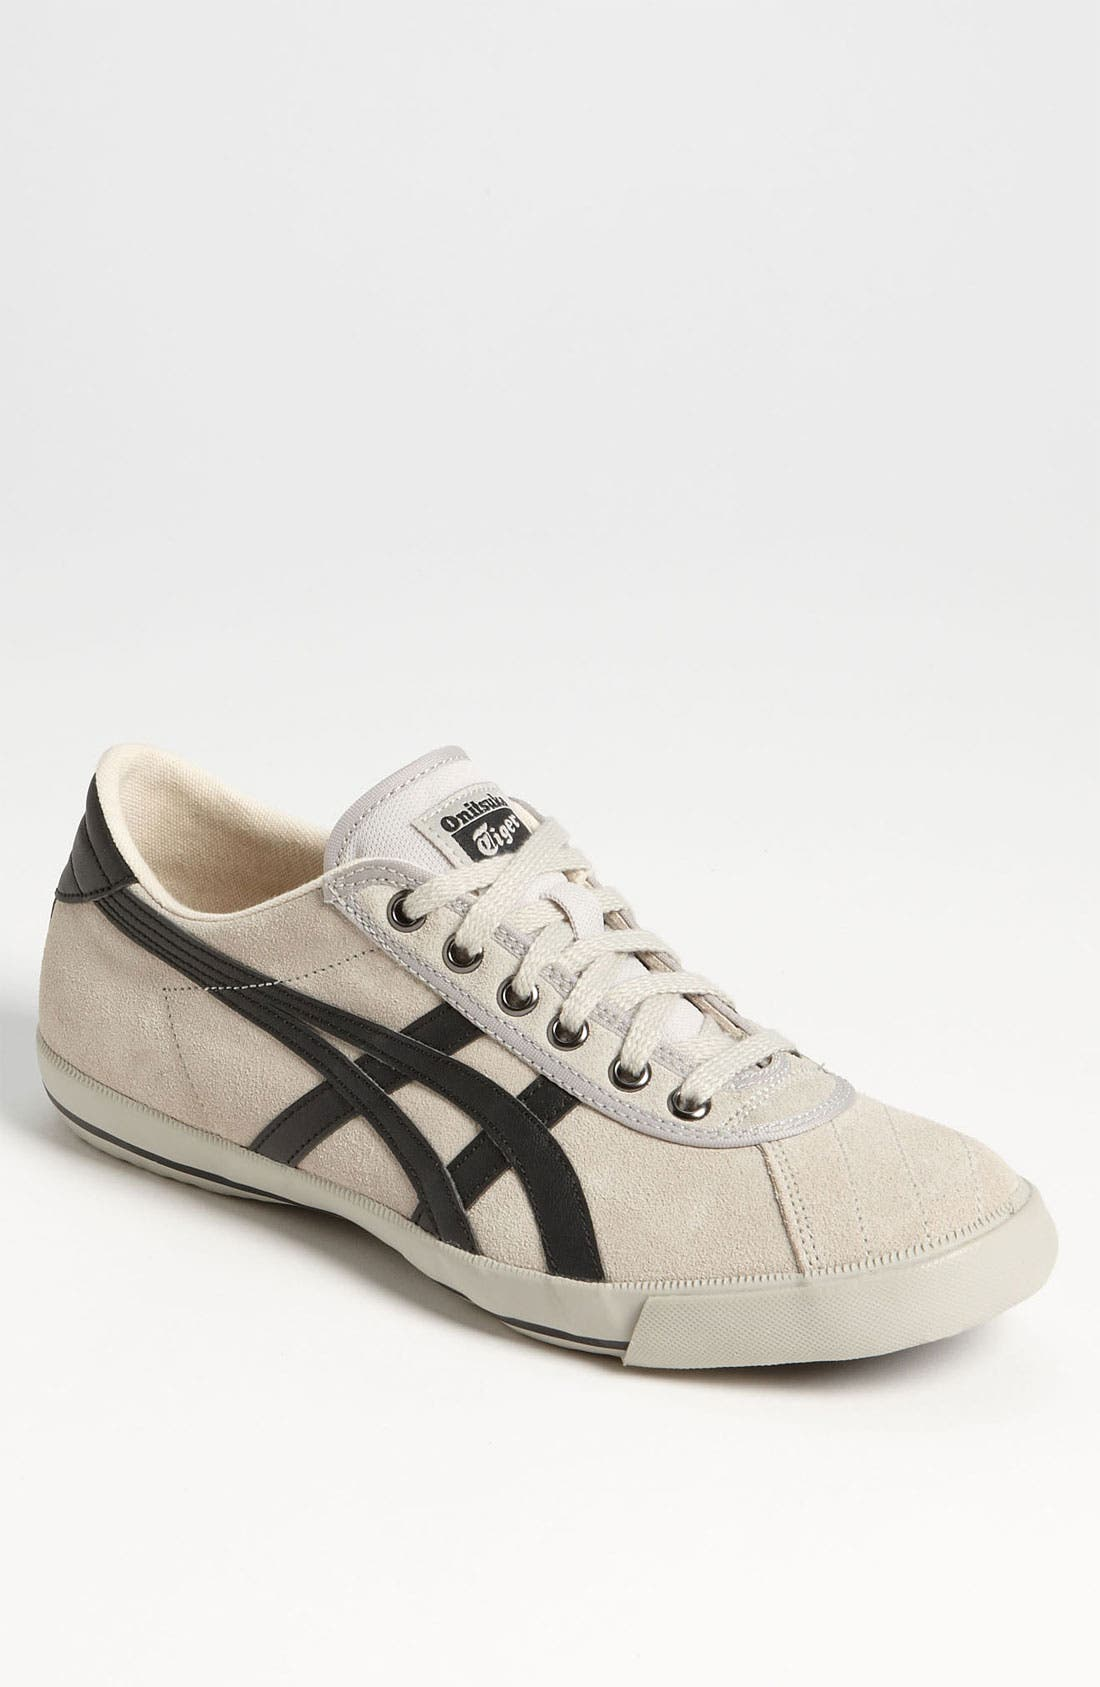 Main Image - Onitsuka Tiger™ 'Rotation 77' Sneaker (Men)